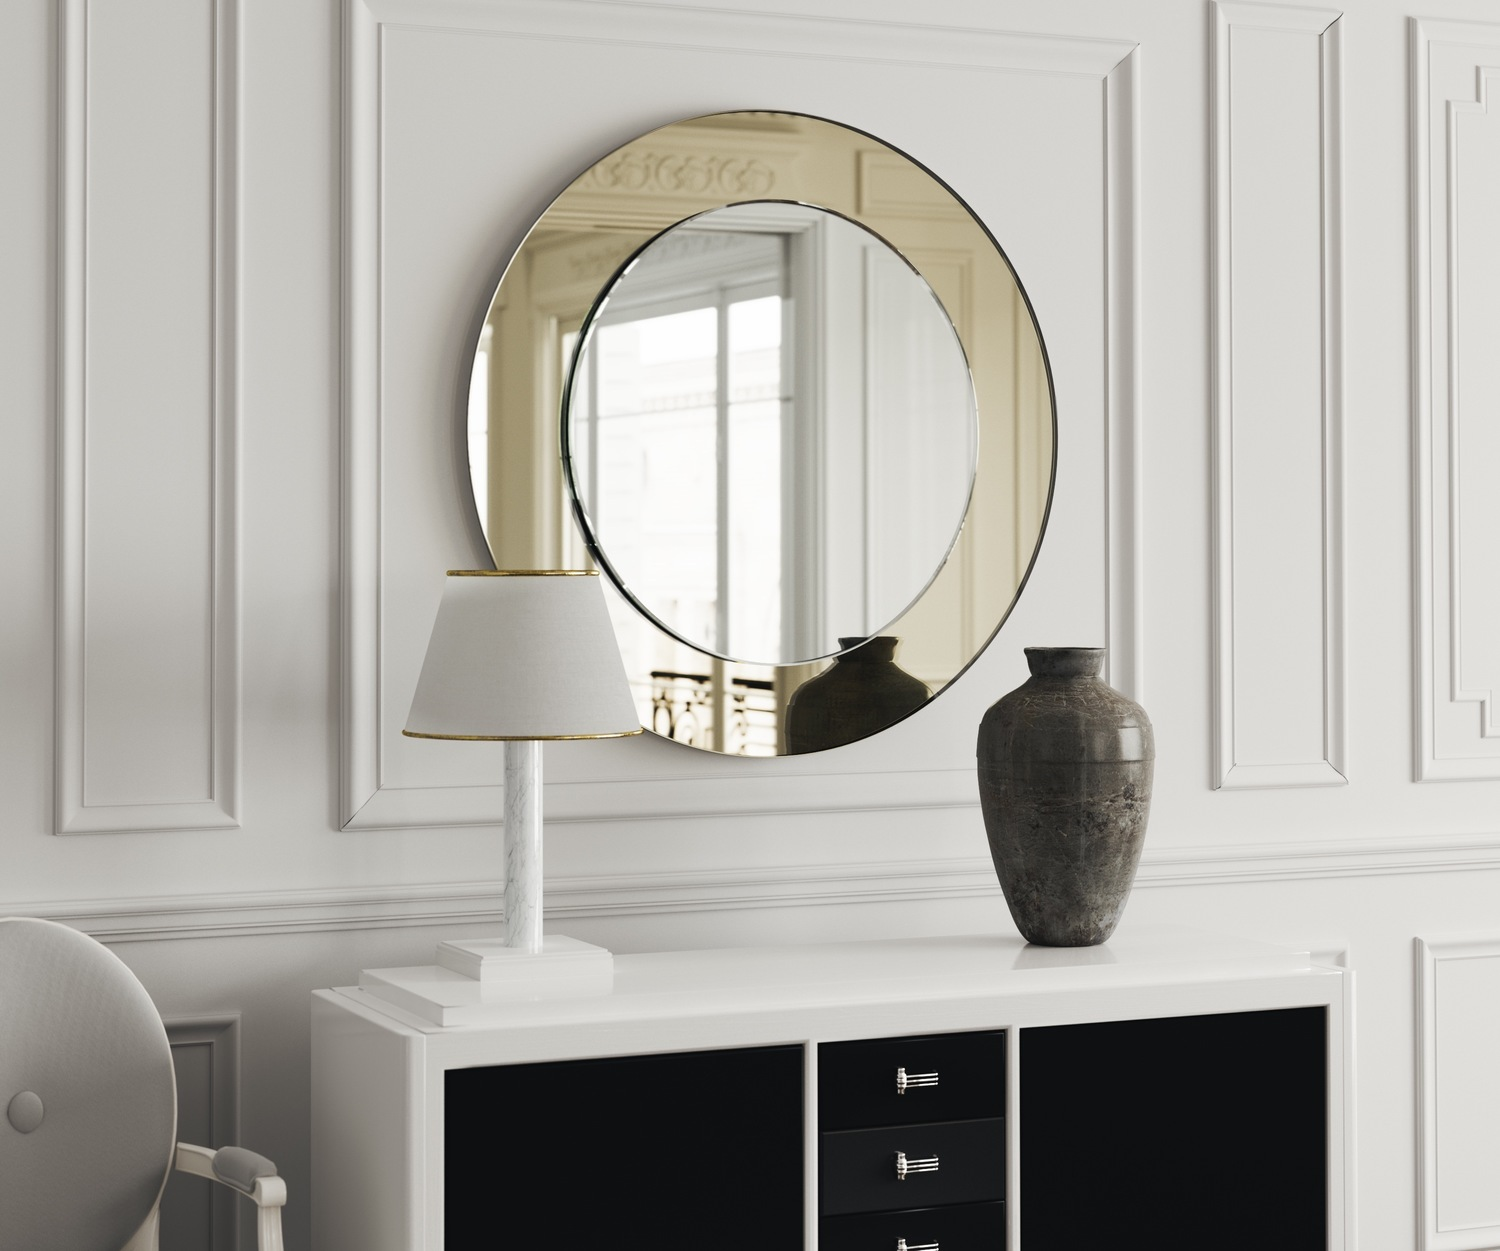 Light gold mirrored border on this Art Deco wall mirror